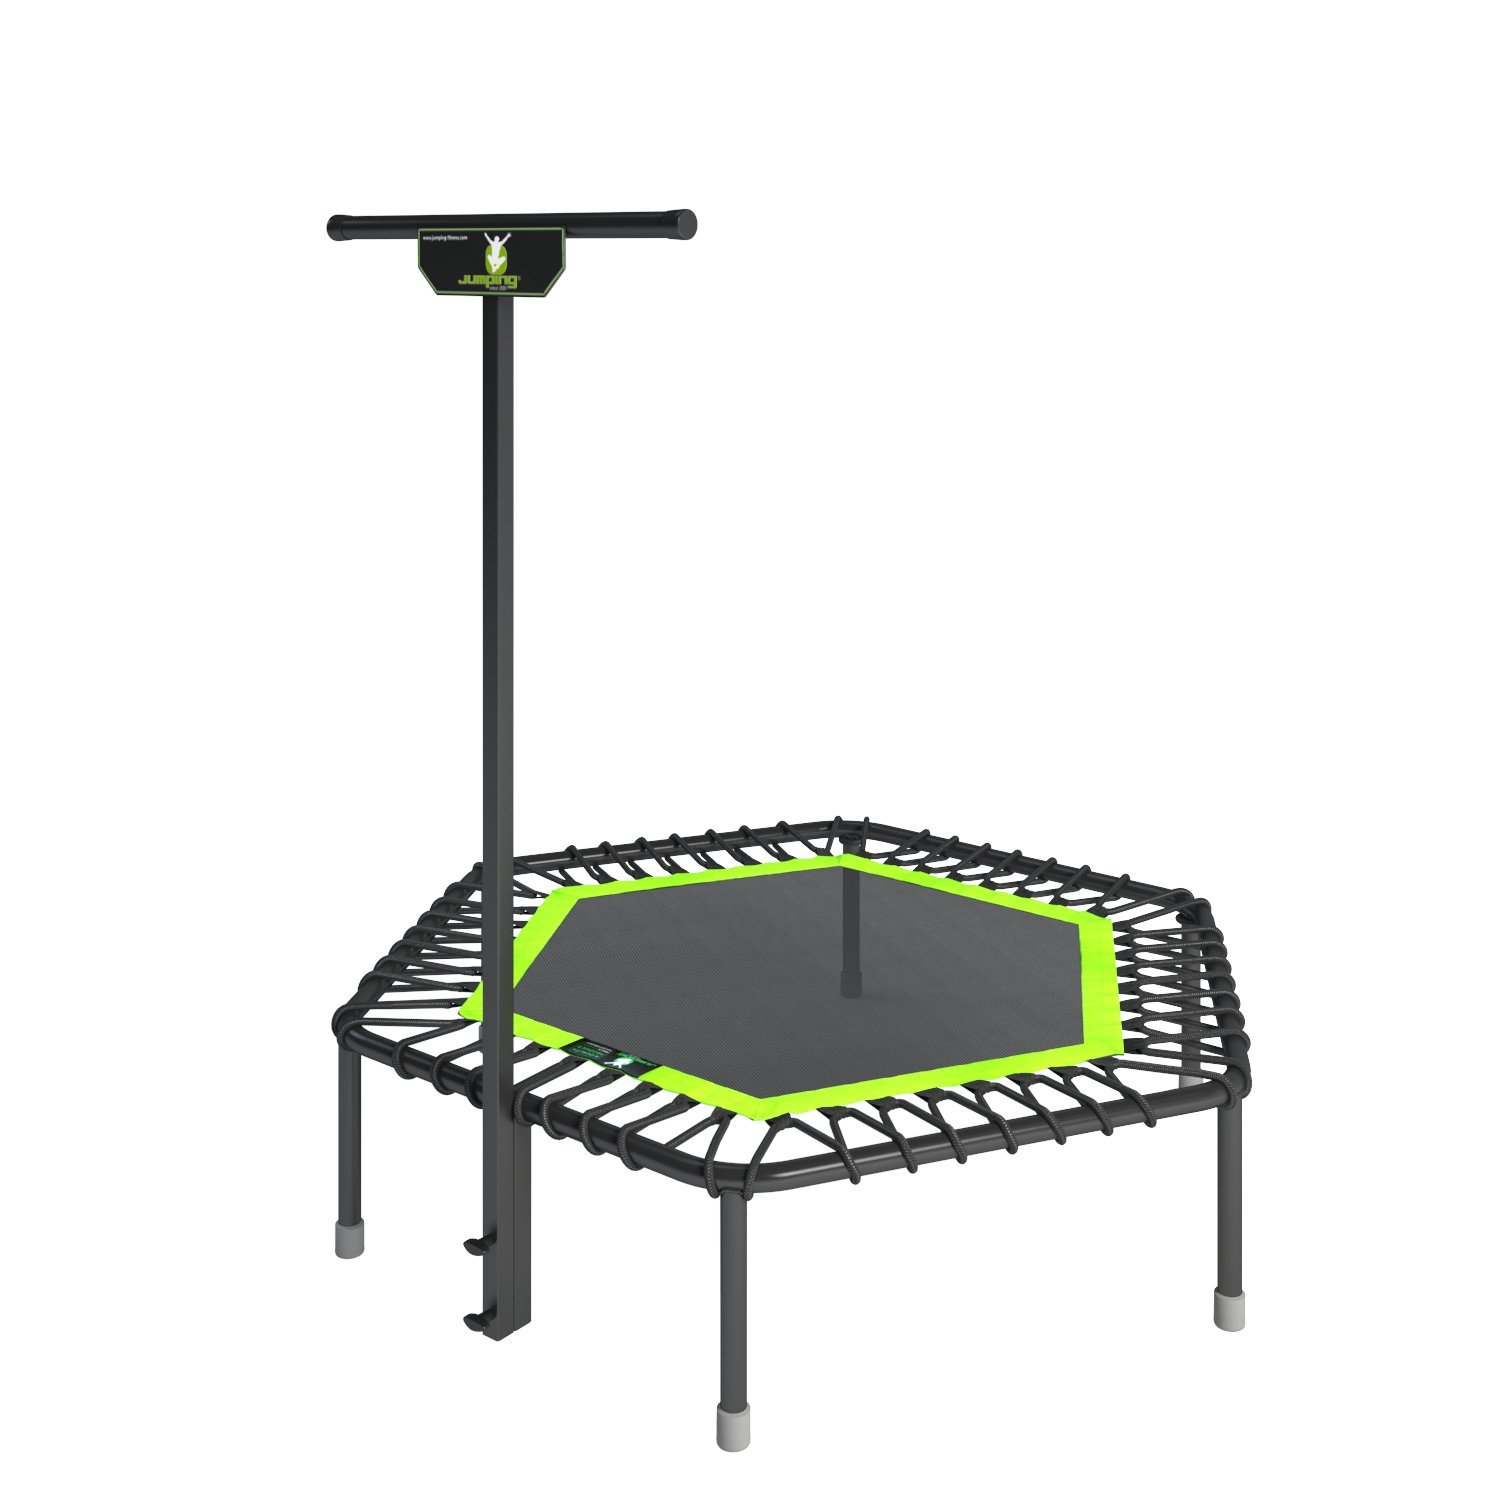 'Jumping® Professional Trampoline Light JSTB International s.r.o.